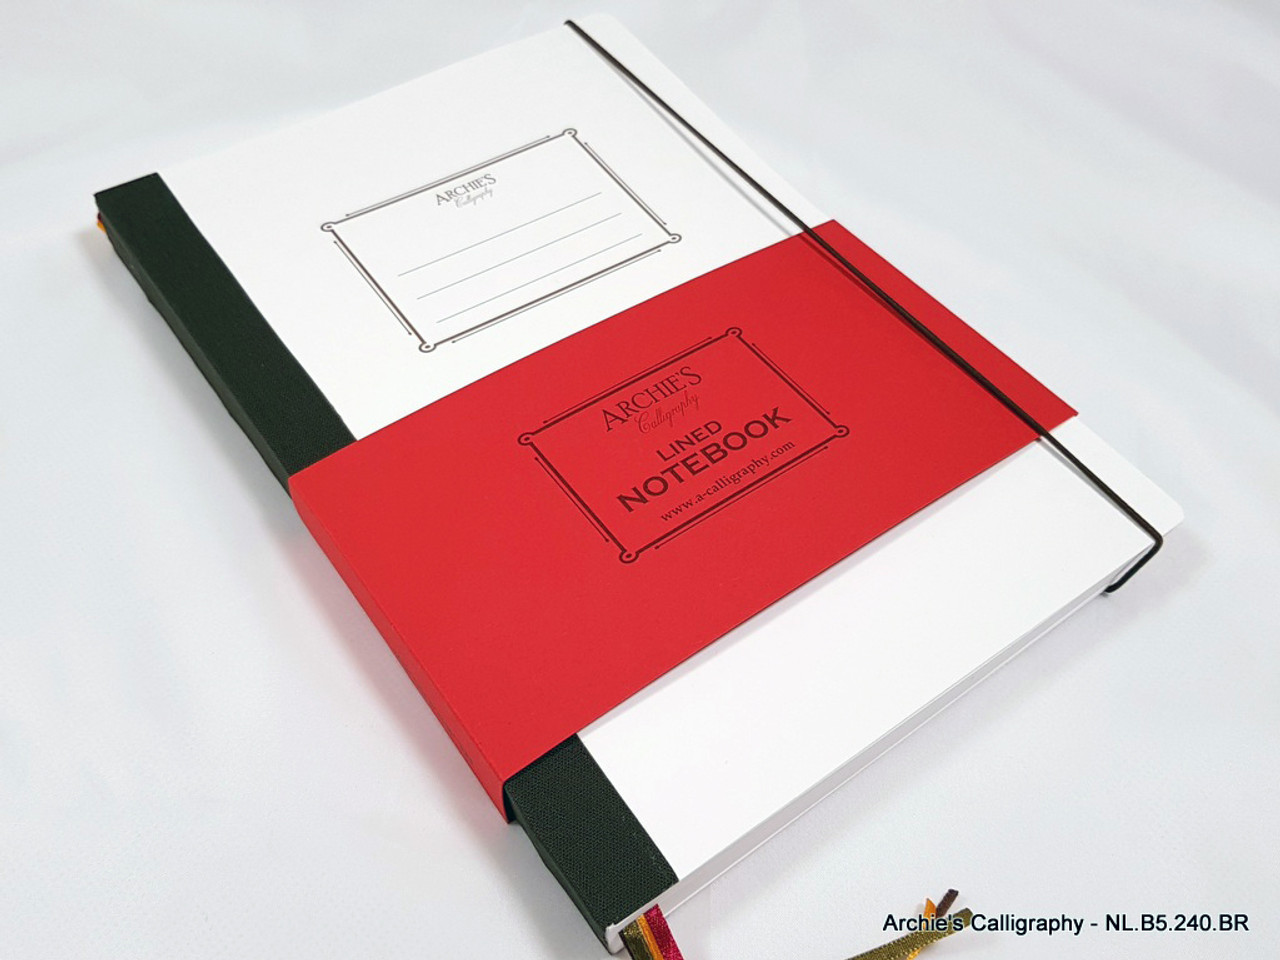 Archie's Calligraphy notebook refill, lined paper